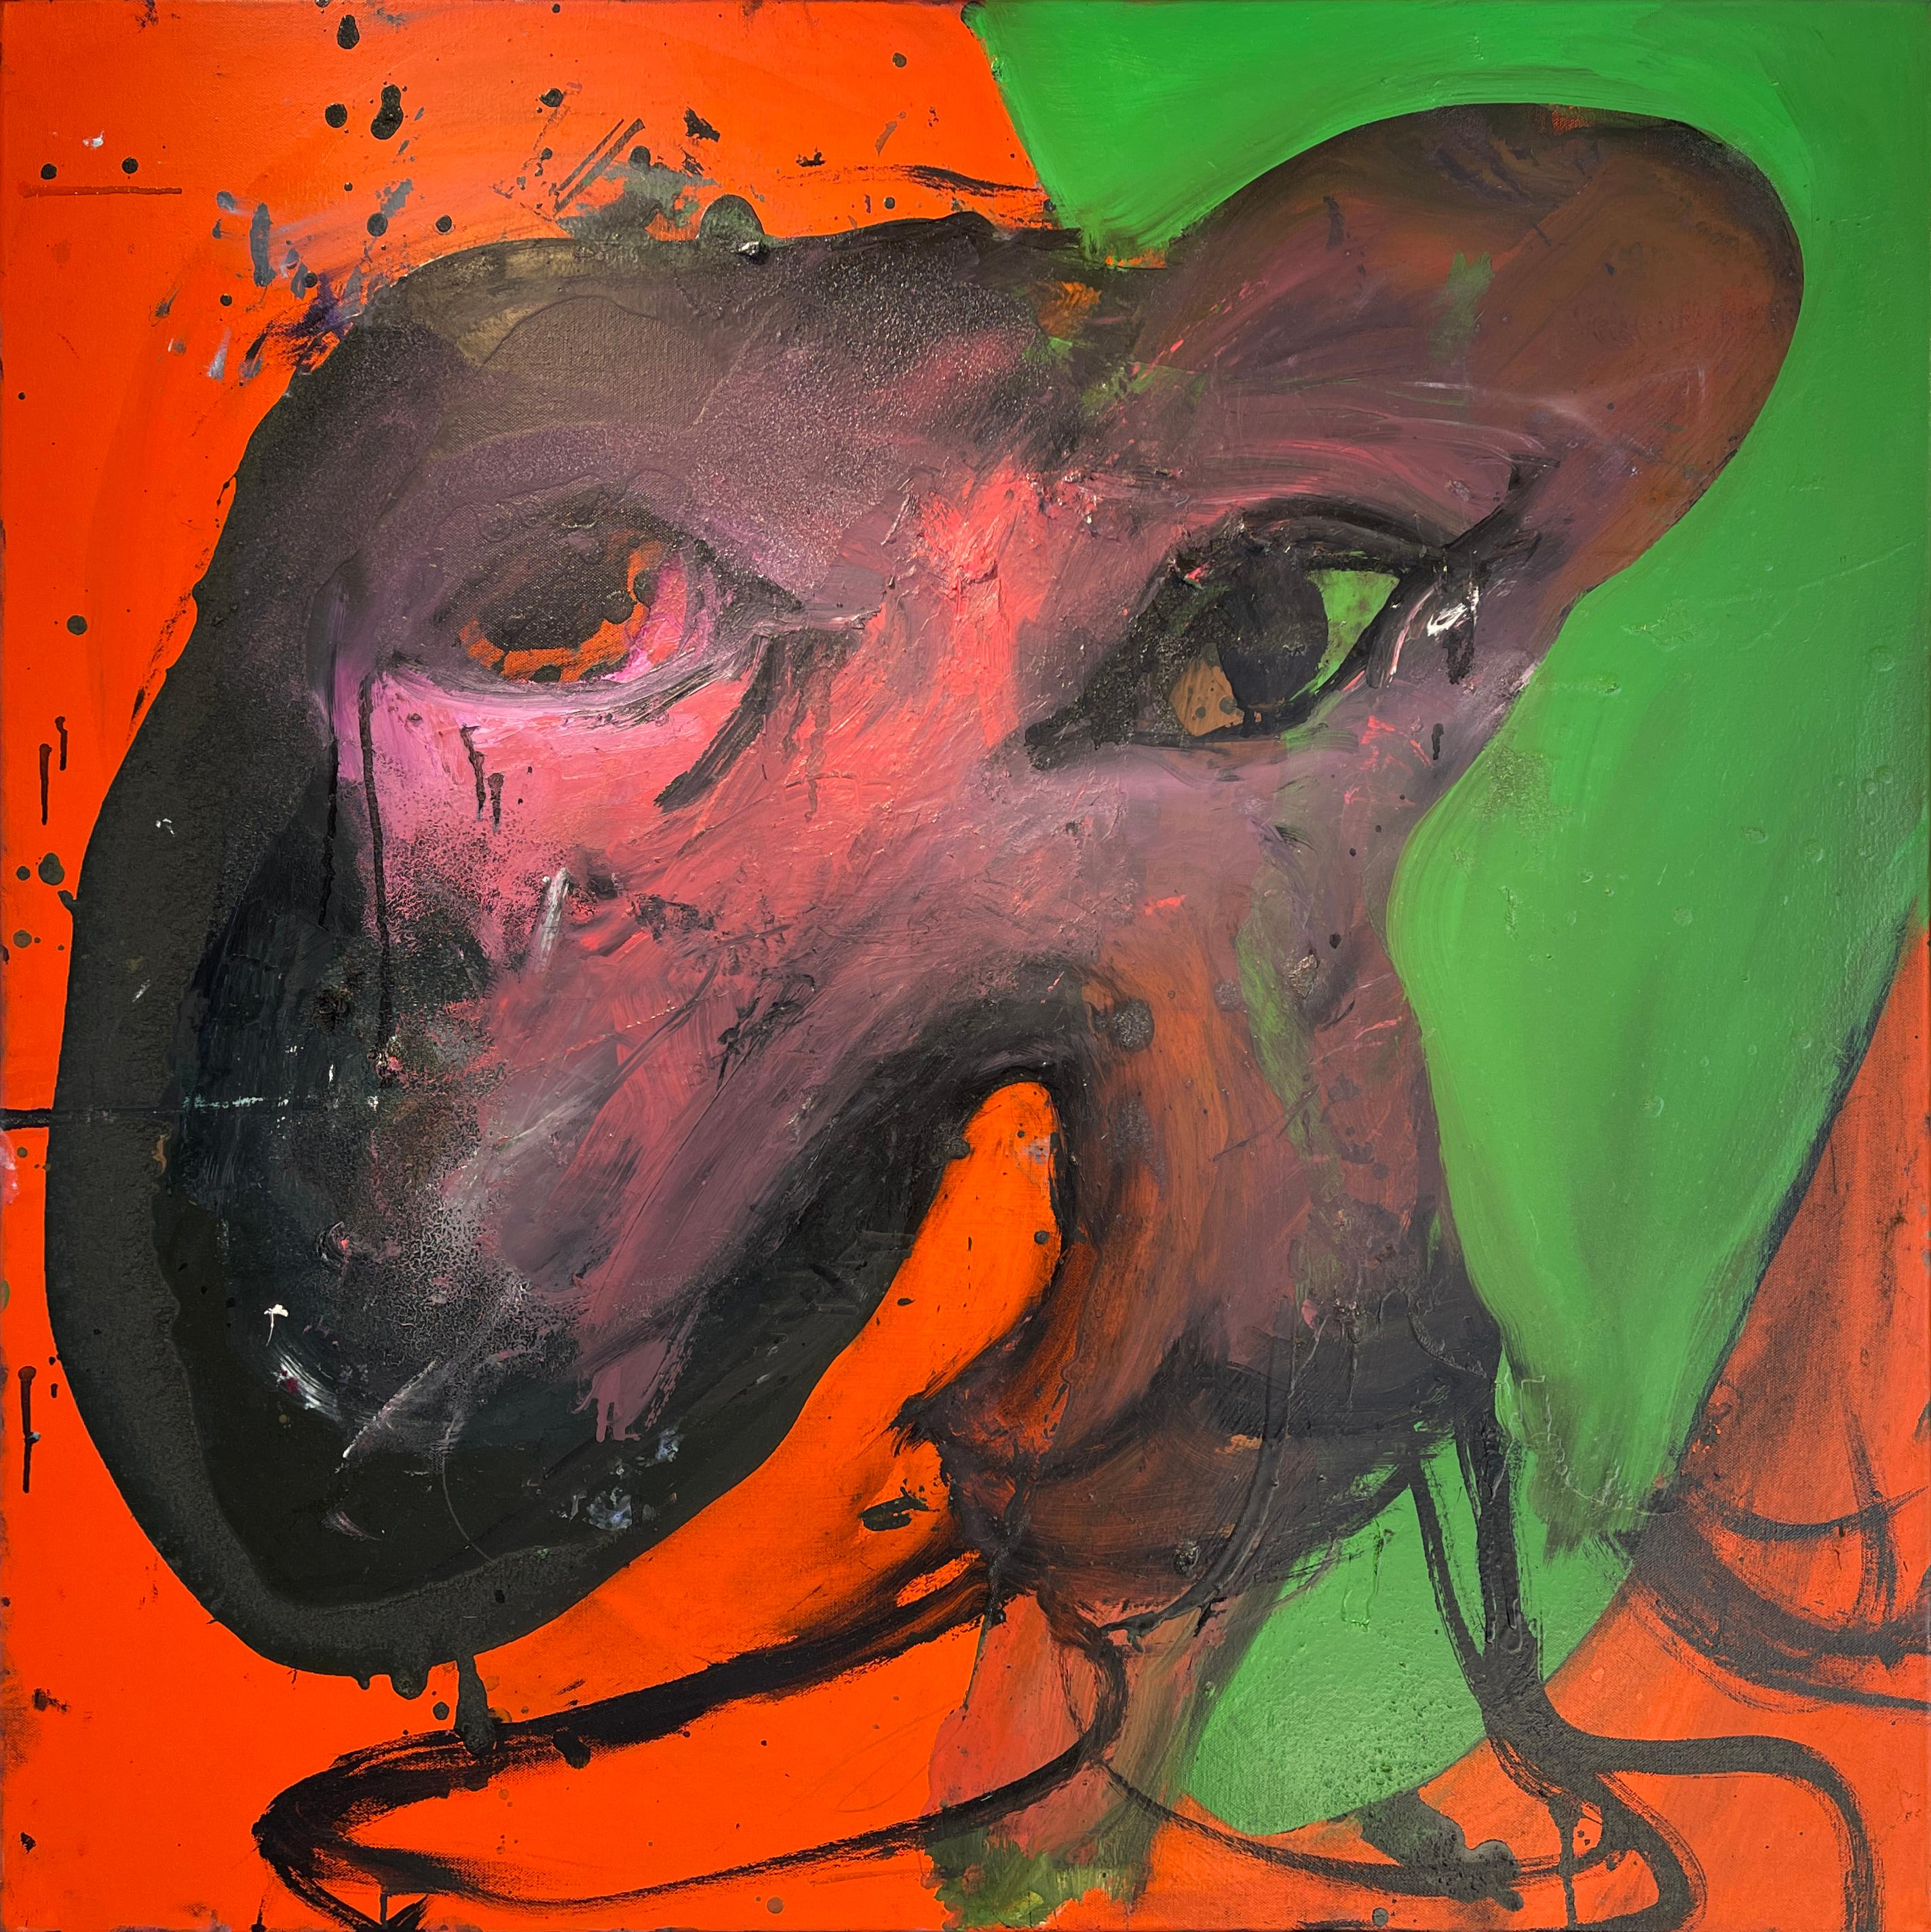 Woman, Original Oil Painting, Abstract Figure on Red and Green Background